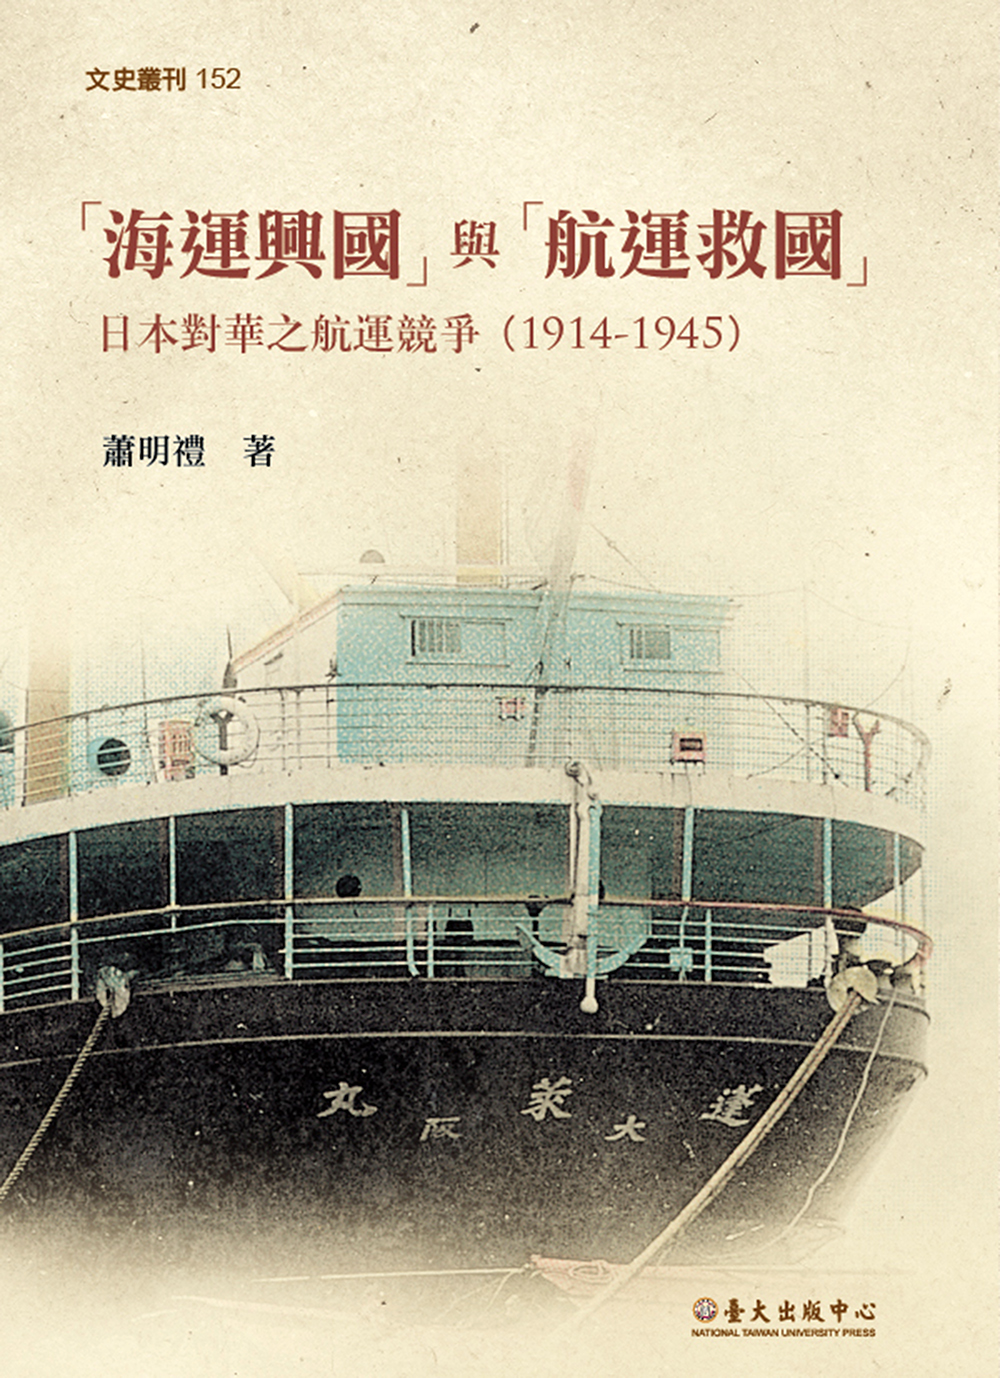 The Sino-Japanese Steamship Rivalry in China, 1914-1945